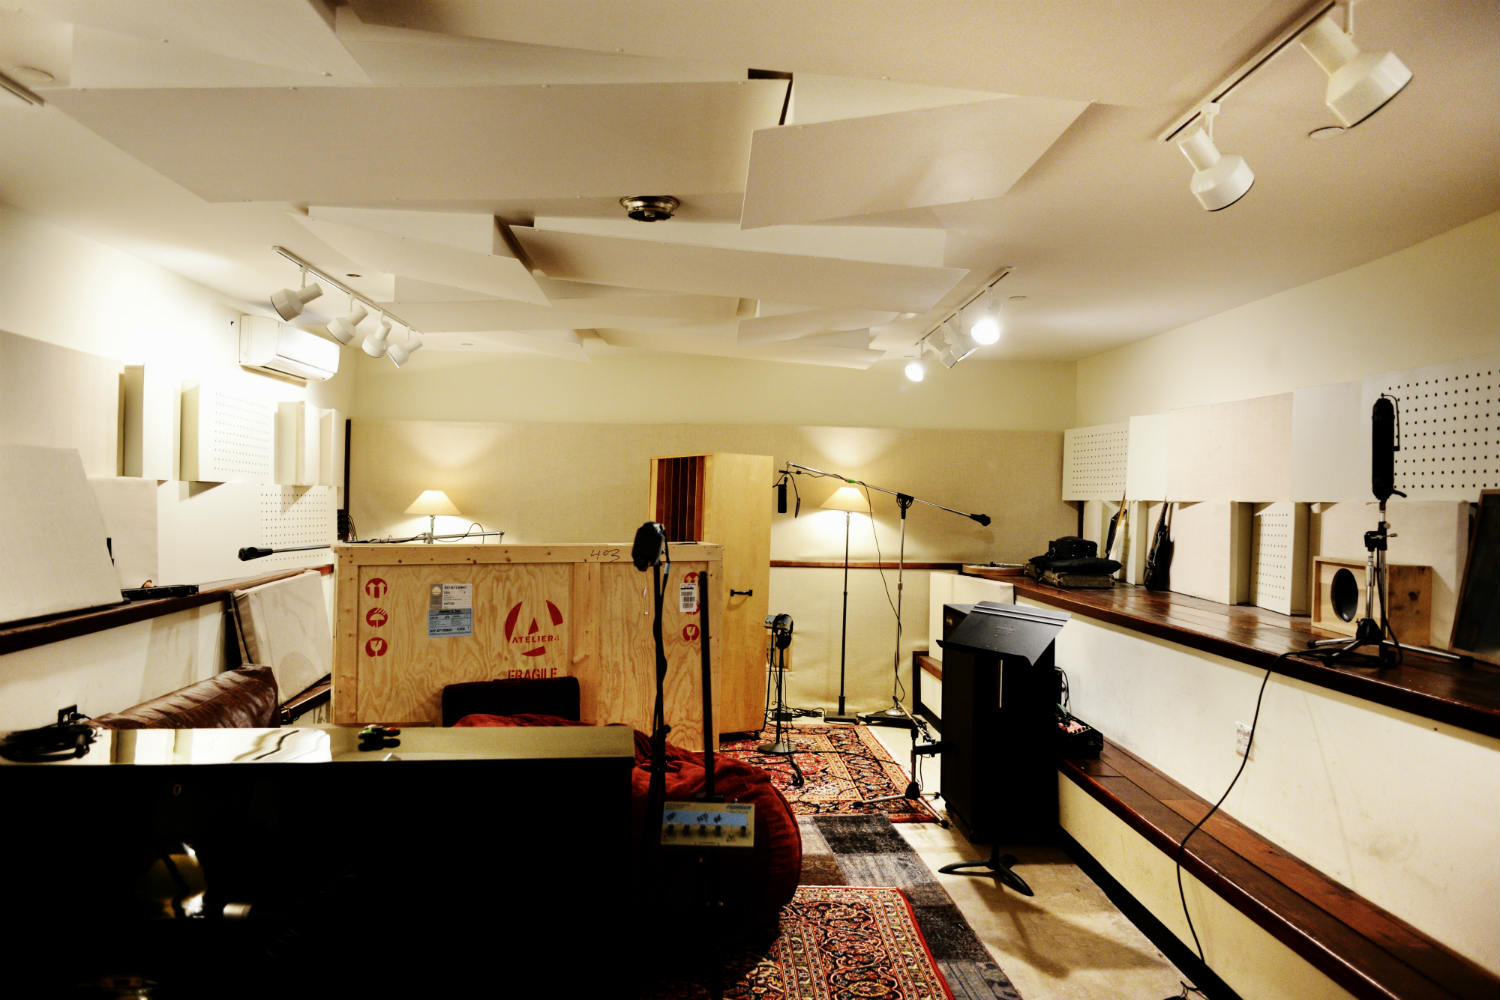 Jack Antonoff's XL Studios from his XL Recordings label, located in Soho, NYC, designed by WSDG. Live Room 2